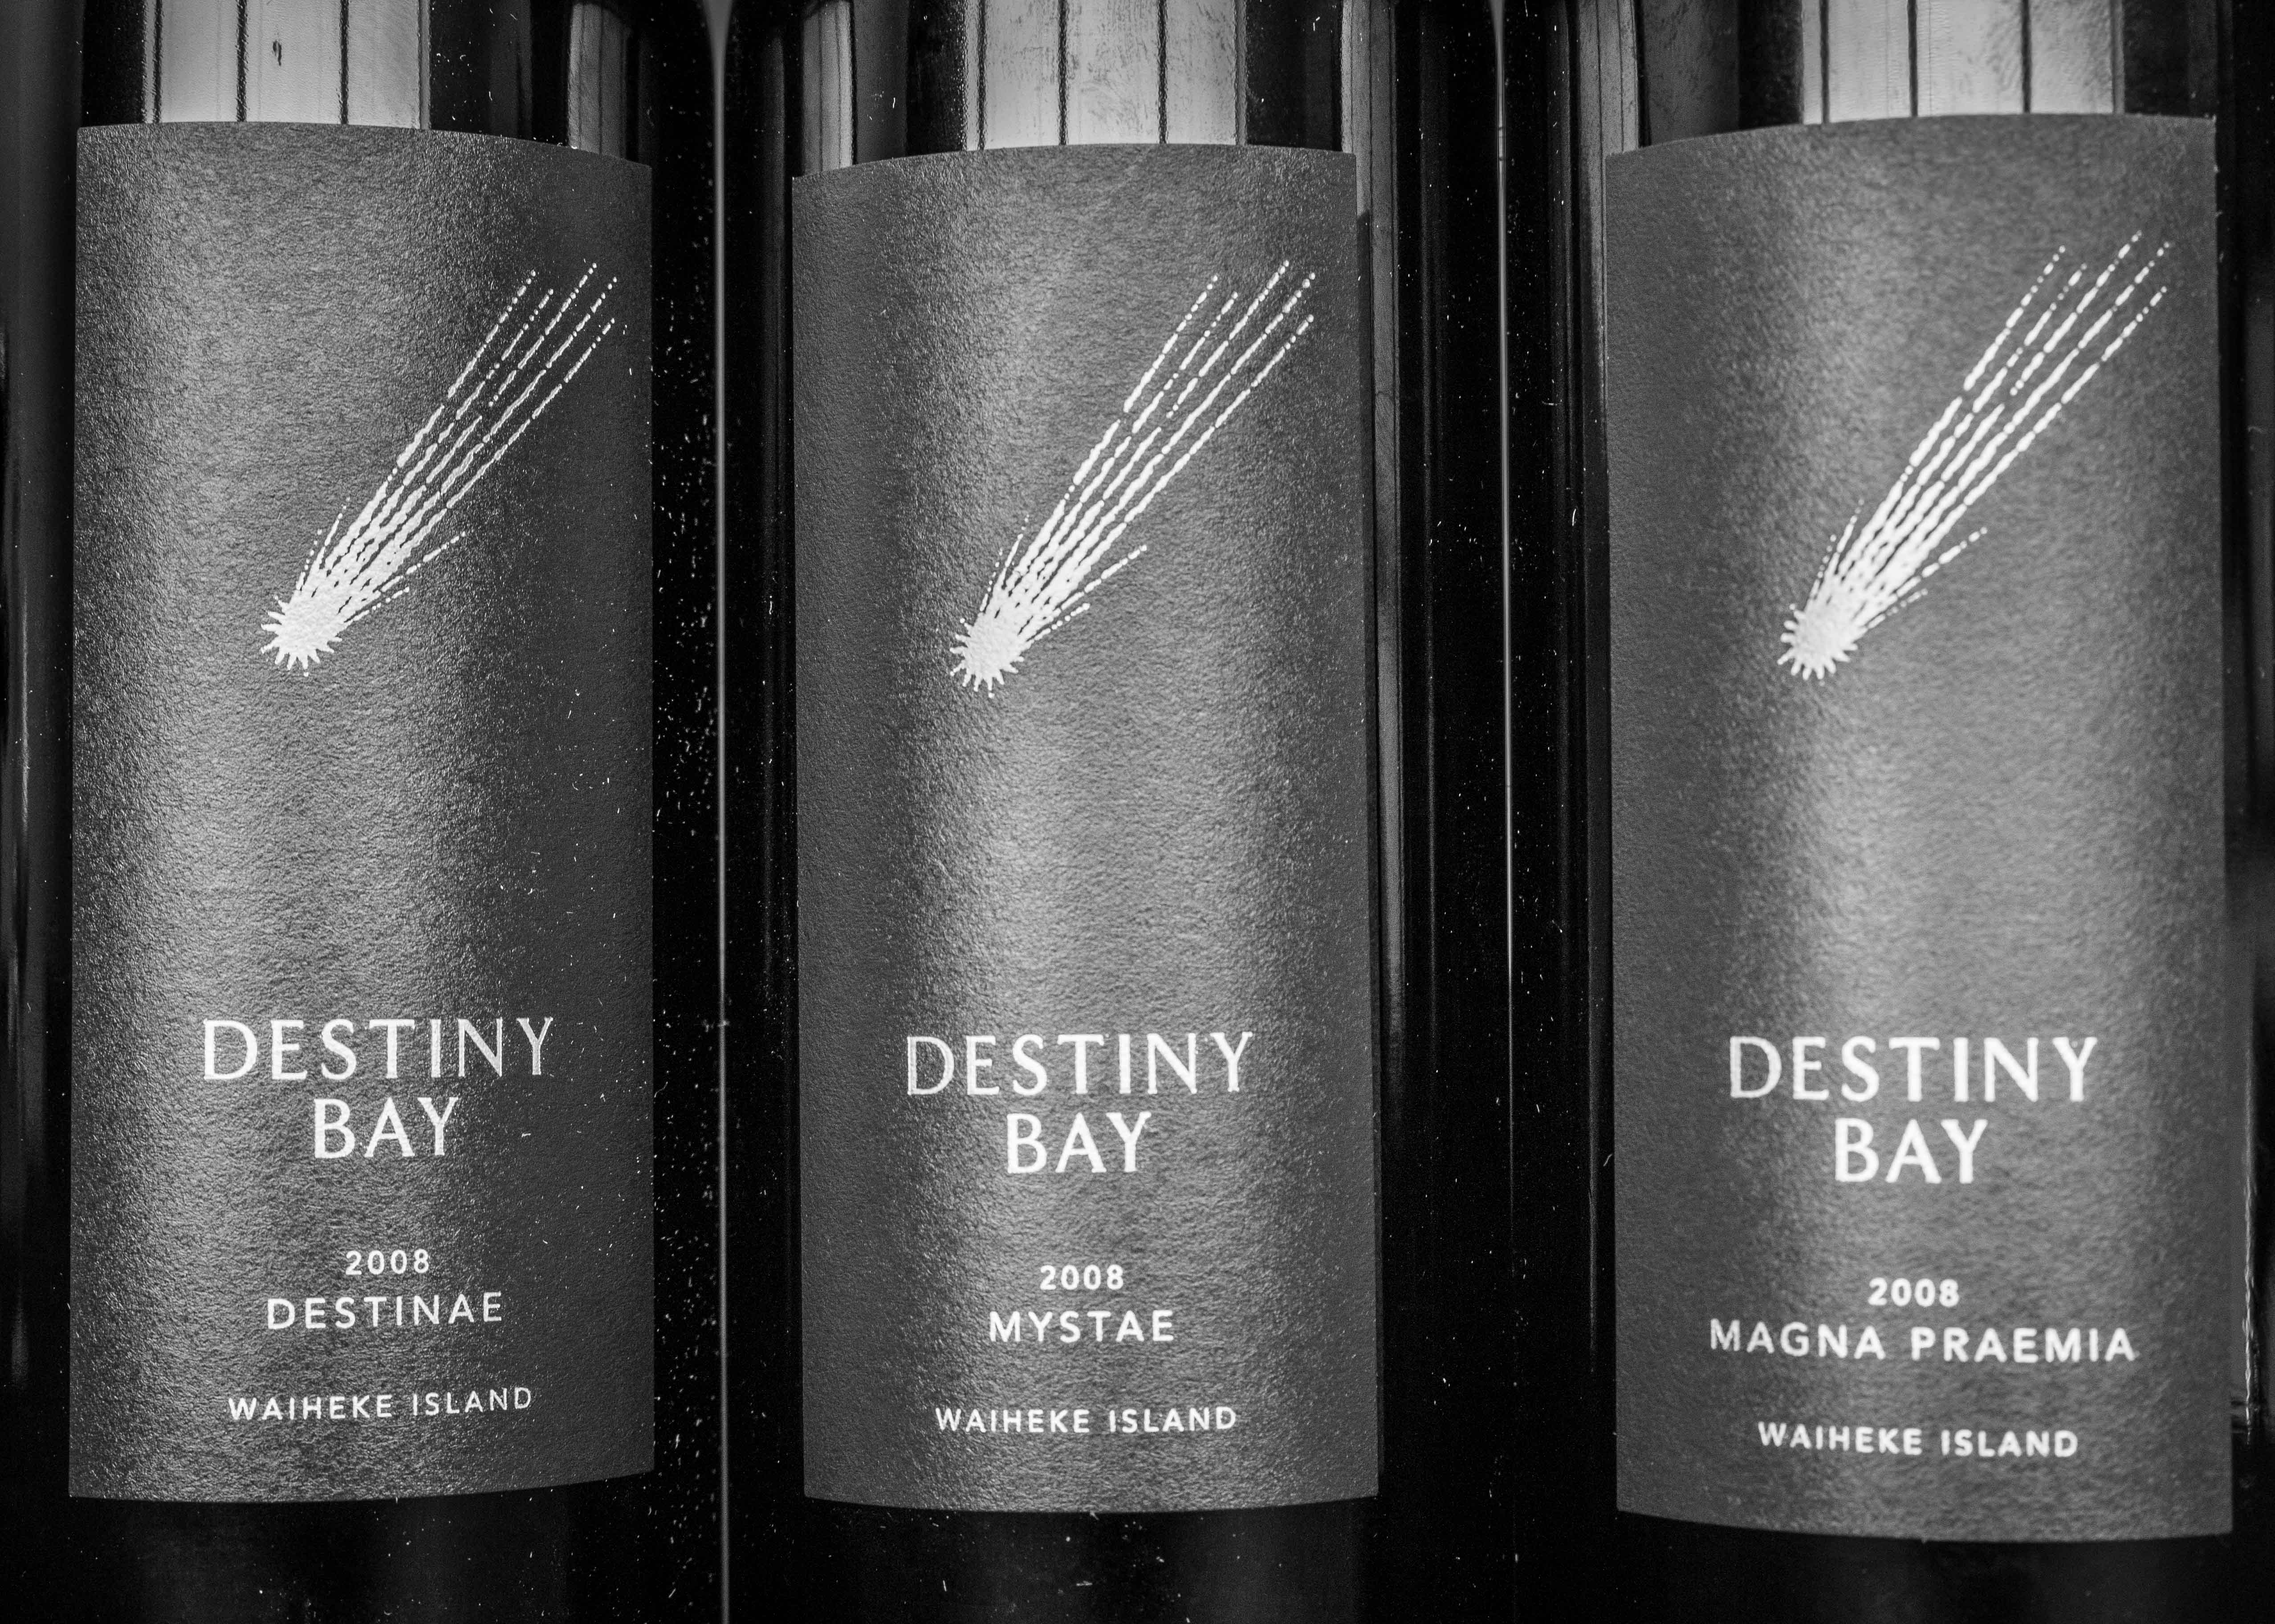 Destiny Bay Winery, Waiheke Island, New Zealand